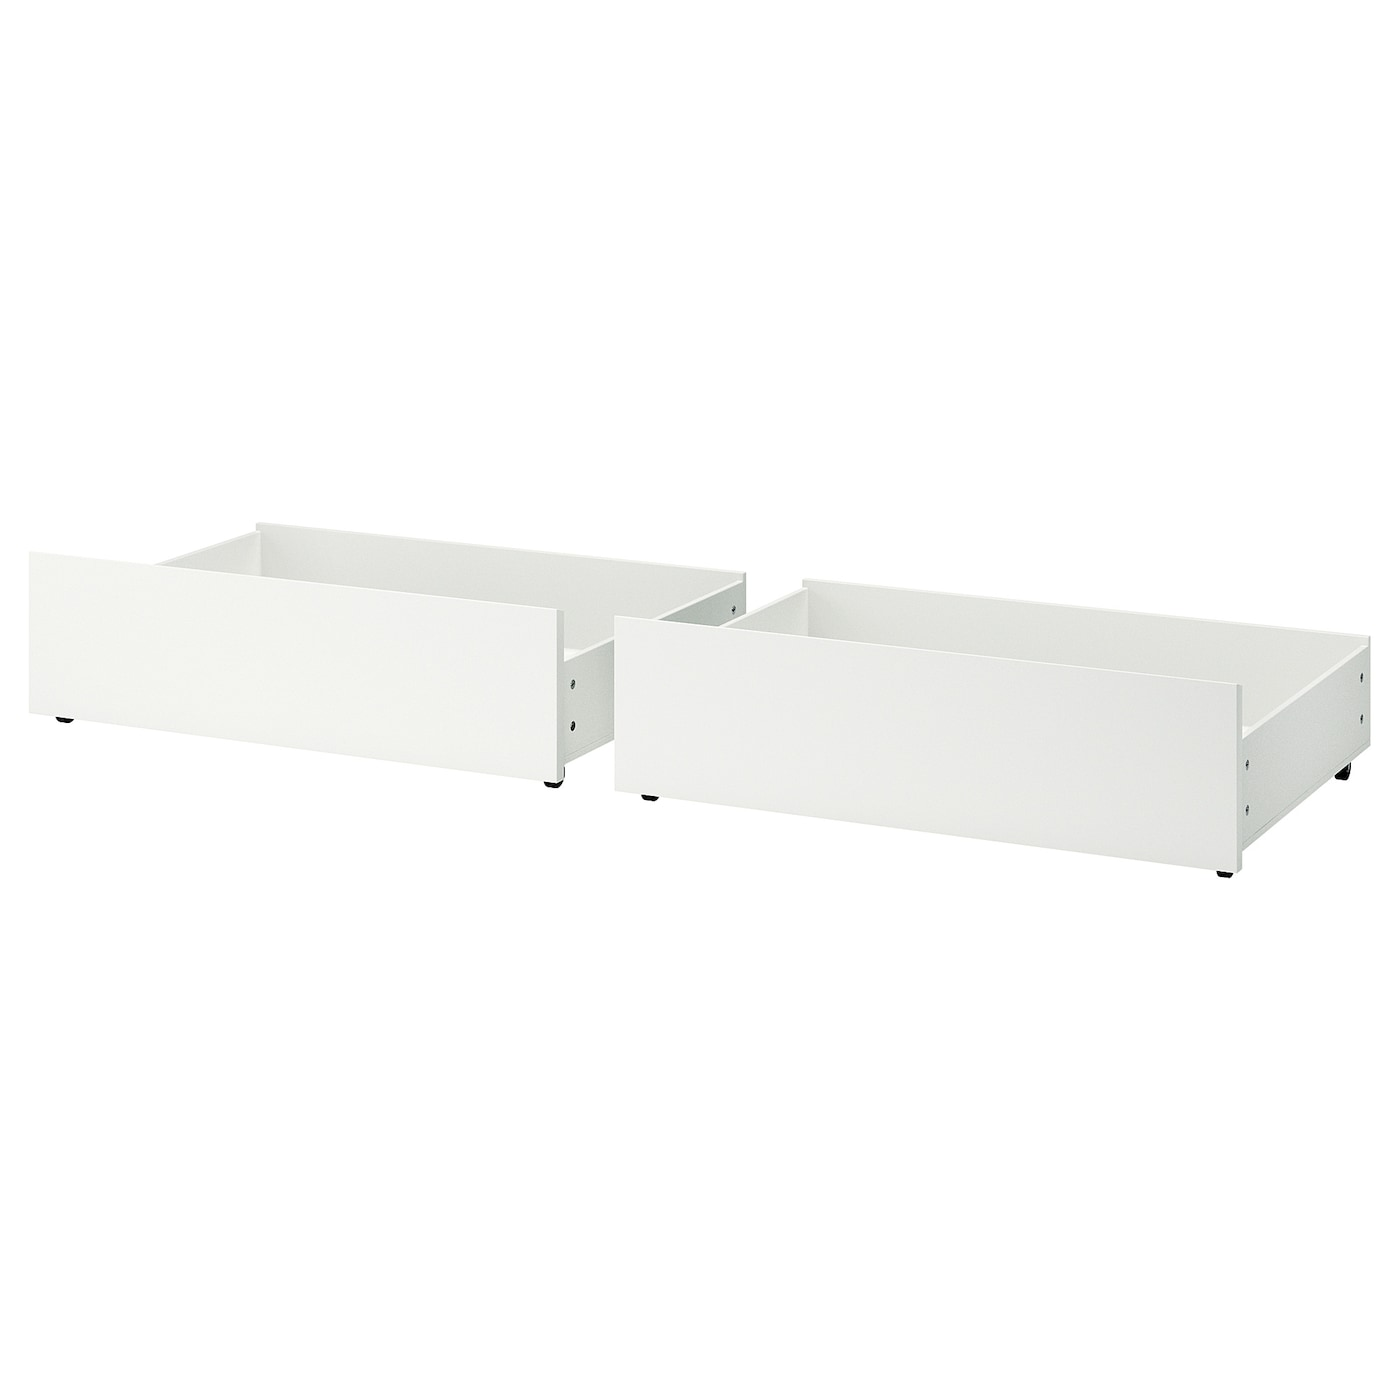 Ikea Malm Bed Storage Box For High Frame Zoom In